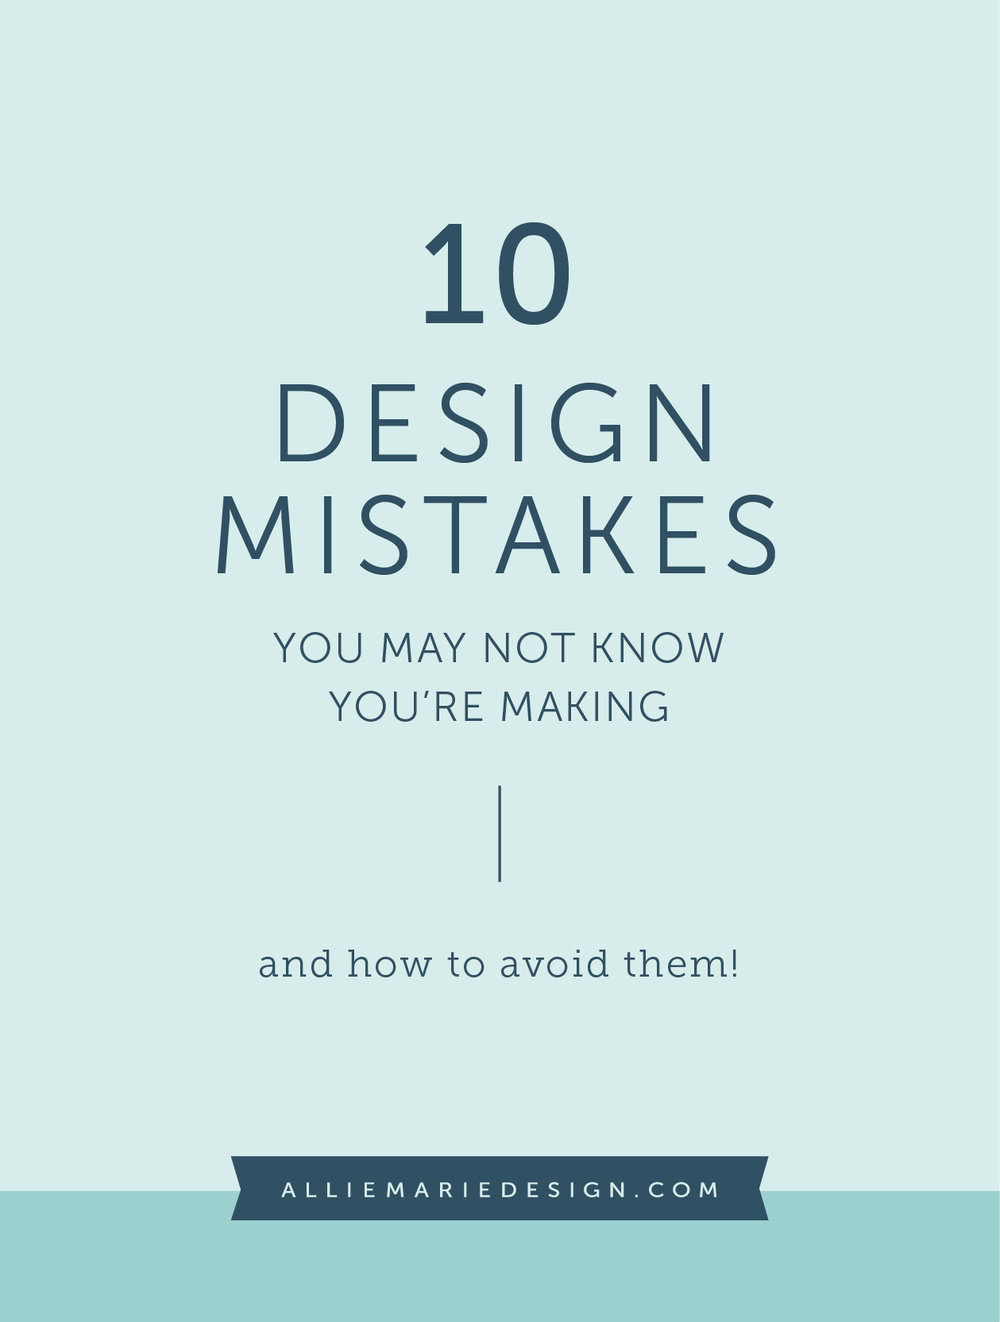 10 Design Mistakes You May Not Know You're Making and How to Avoid Them  |  Design Tips blog post by AllieMarie Design